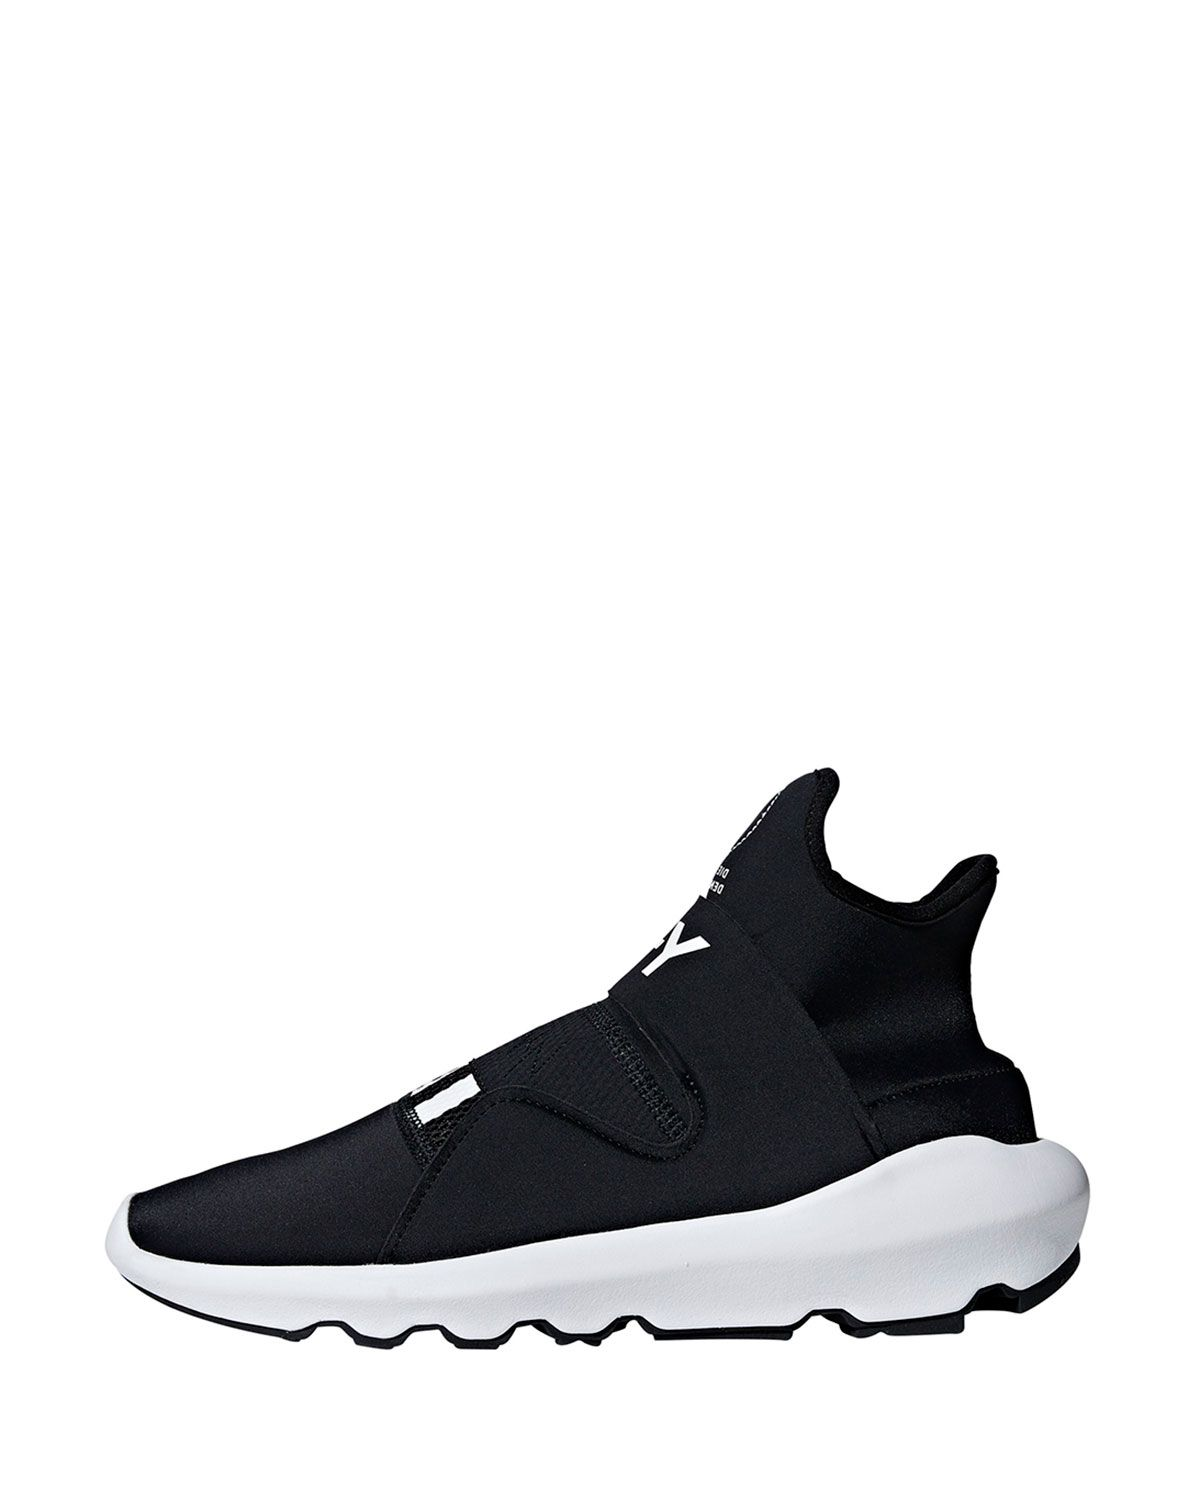 new concept b1e89 570c1 Y-3 MEN S SUBEROU KNIT RUNNING SNEAKERS, BLACK.  y-3  shoes